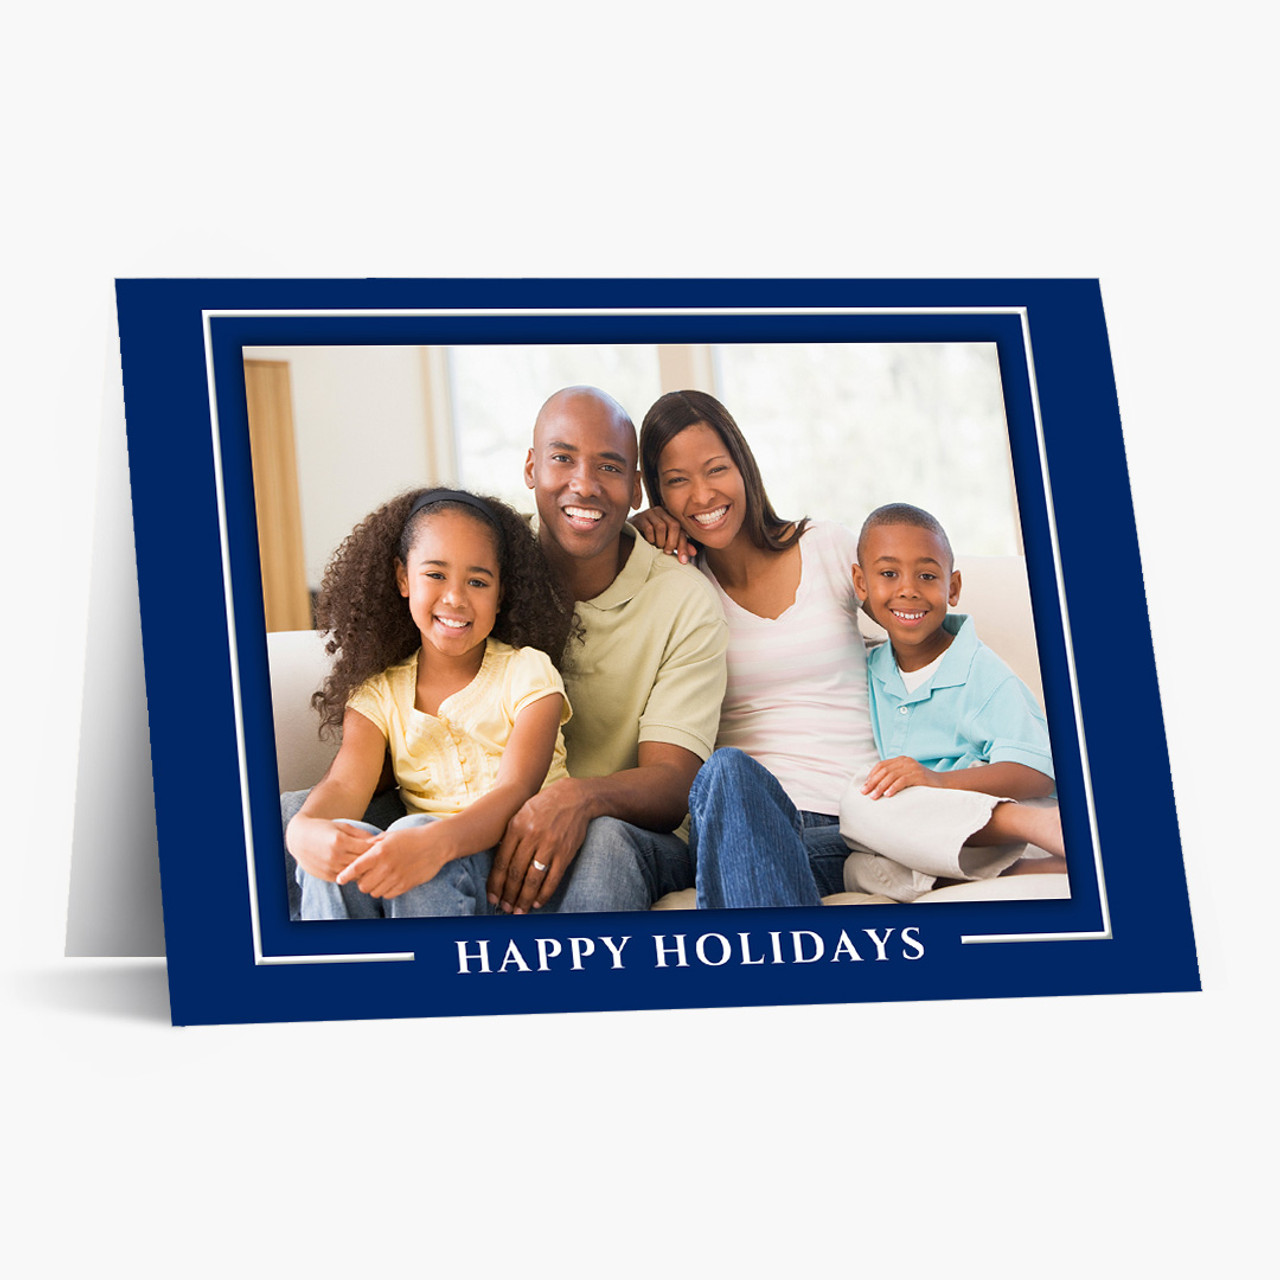 Blue Border Photo - Matte Finish Christmas Card